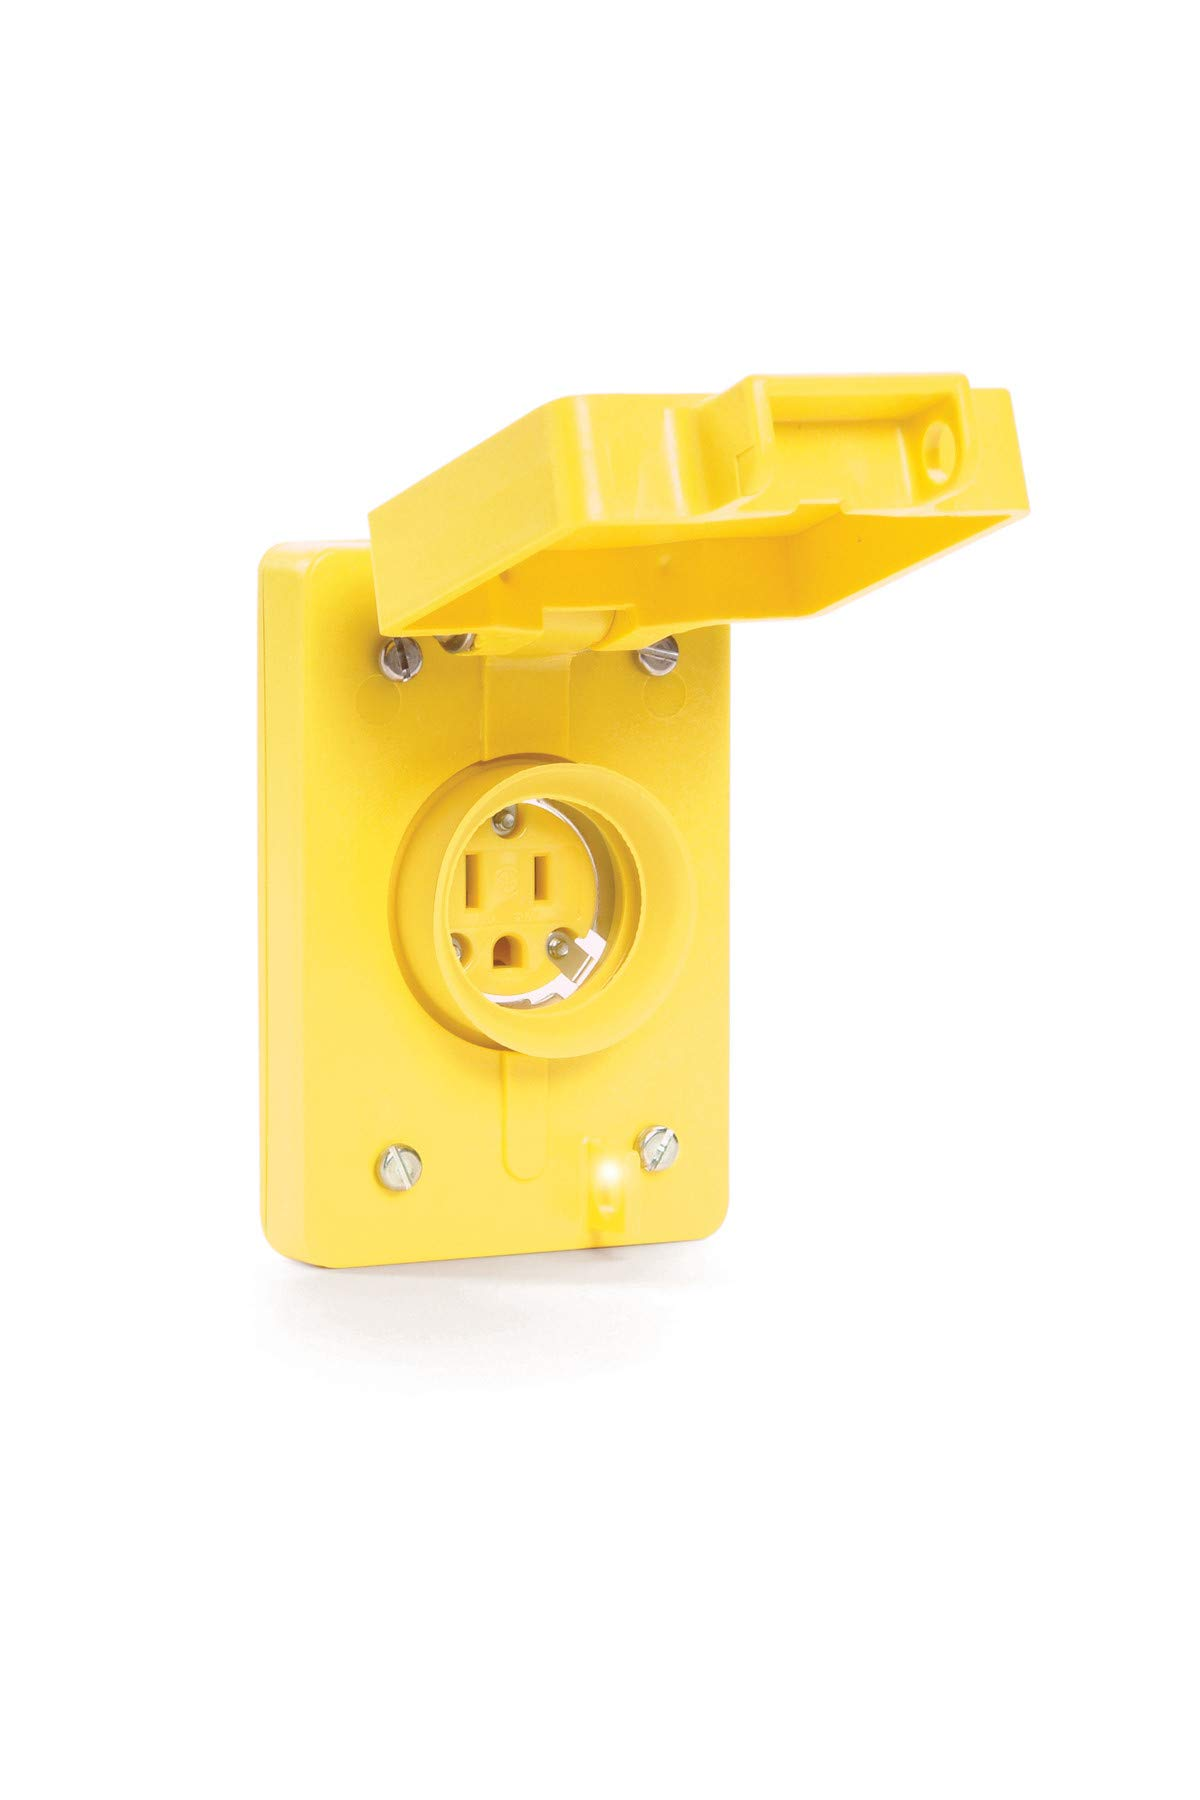 Woodhead 60W47 Watertite Wet Location Straight Blade Receptacle, Female, Single Flip Lid, 3 Wires, 2 Poles, NEMA 5-15 Configuration, Yellow, 15A Current, 125V Voltage, 3ft Cord Length